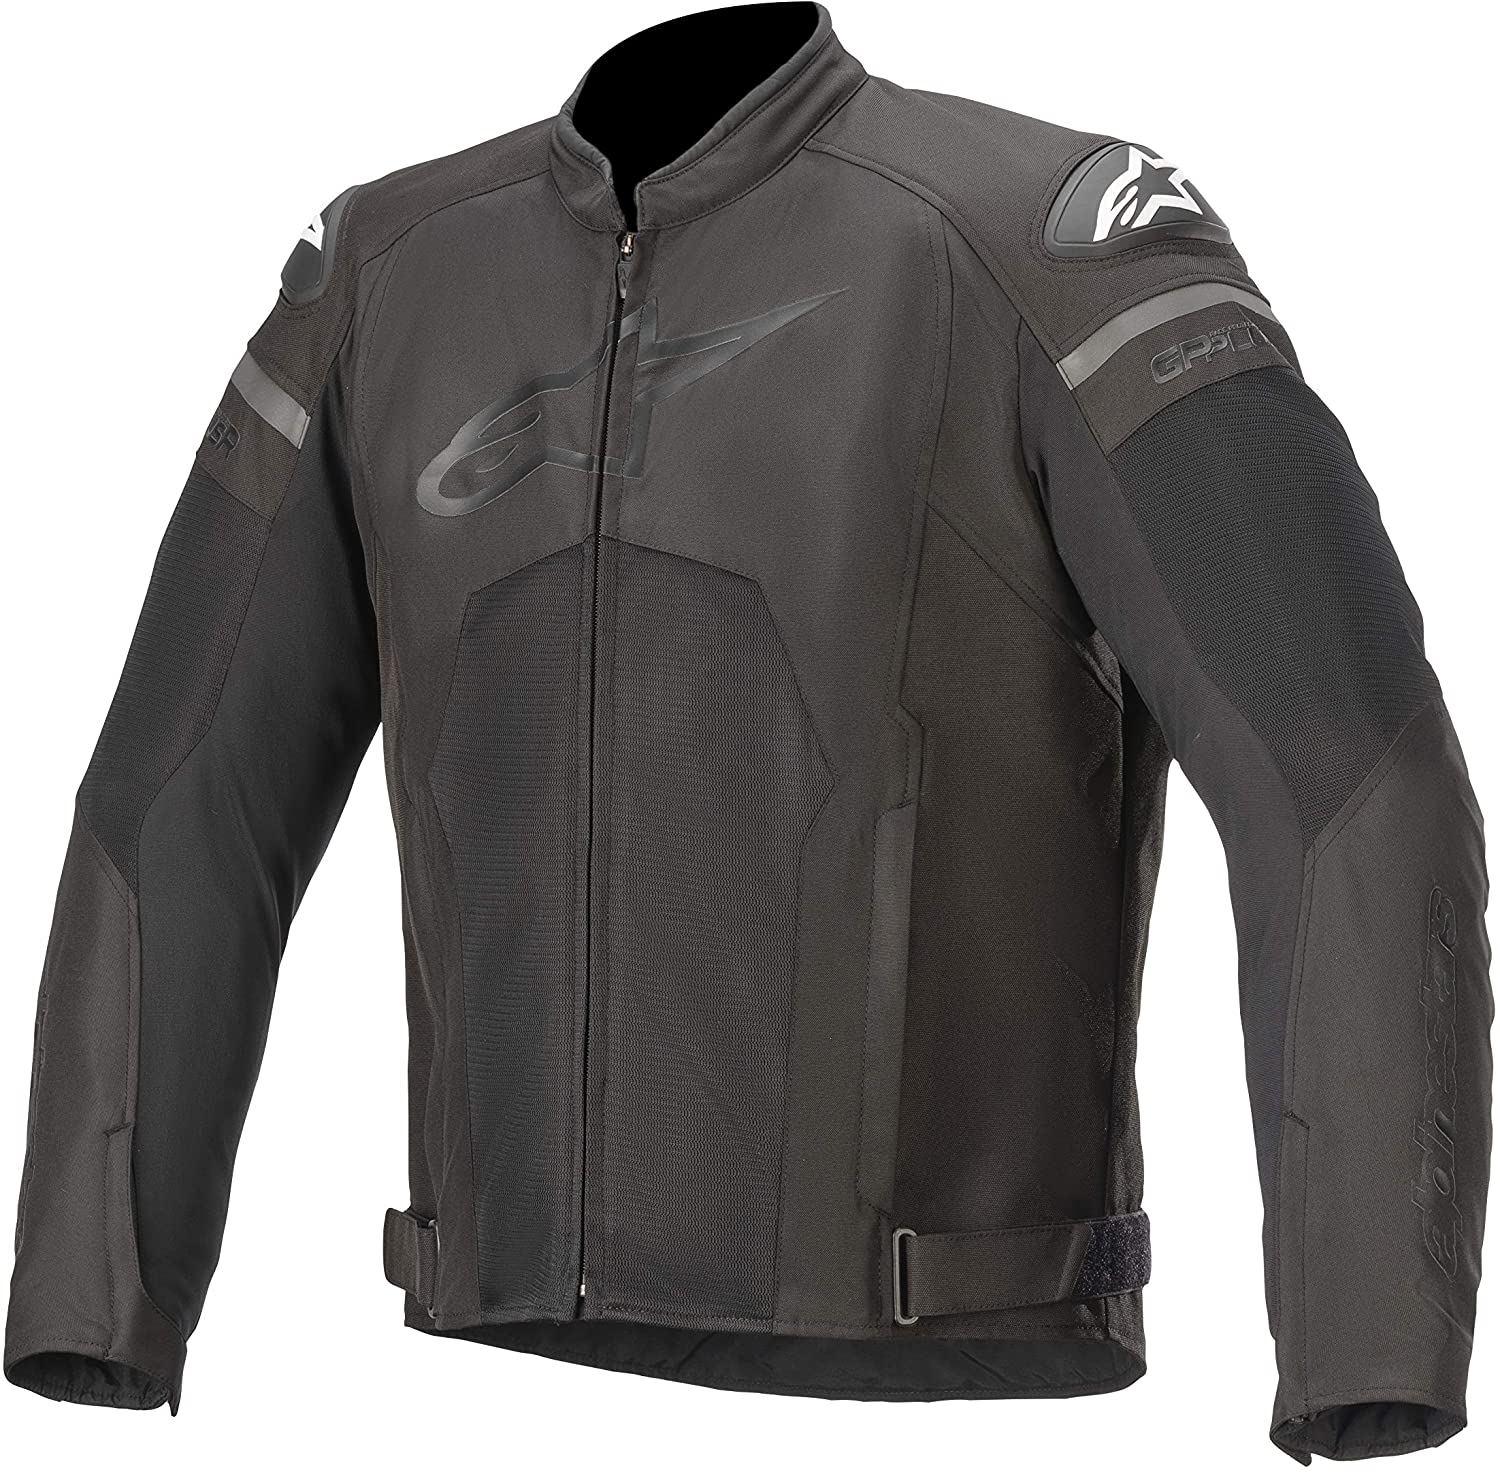 Alpinestars Men's T-GP Plus R v3 Air Motorcycle Jacket, Black/Black, 4X-Large